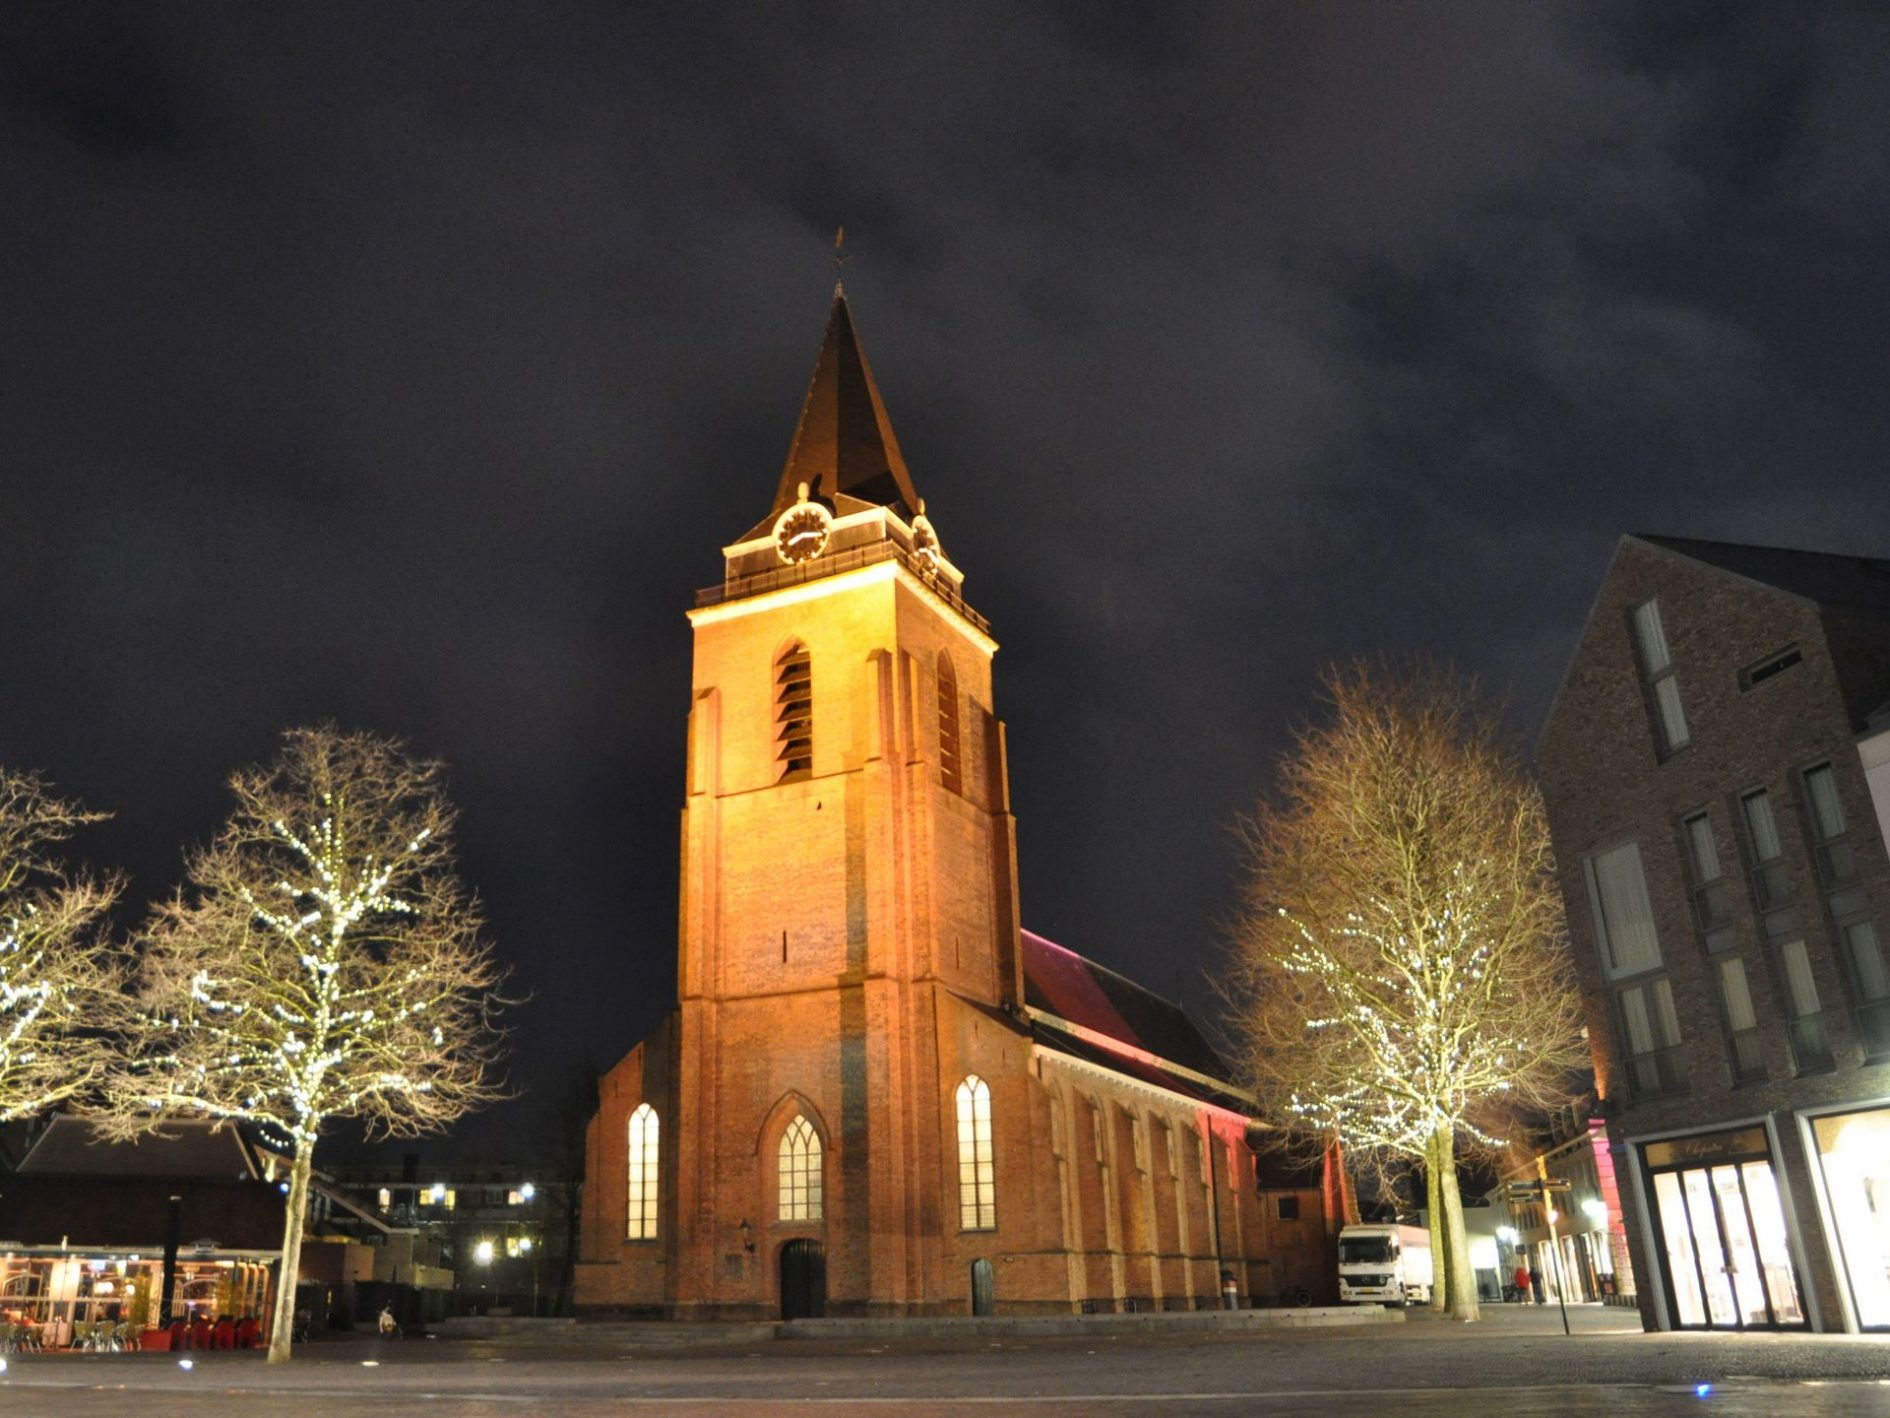 24 dec 21.30 kerstnachtdienst in de Petruskerk